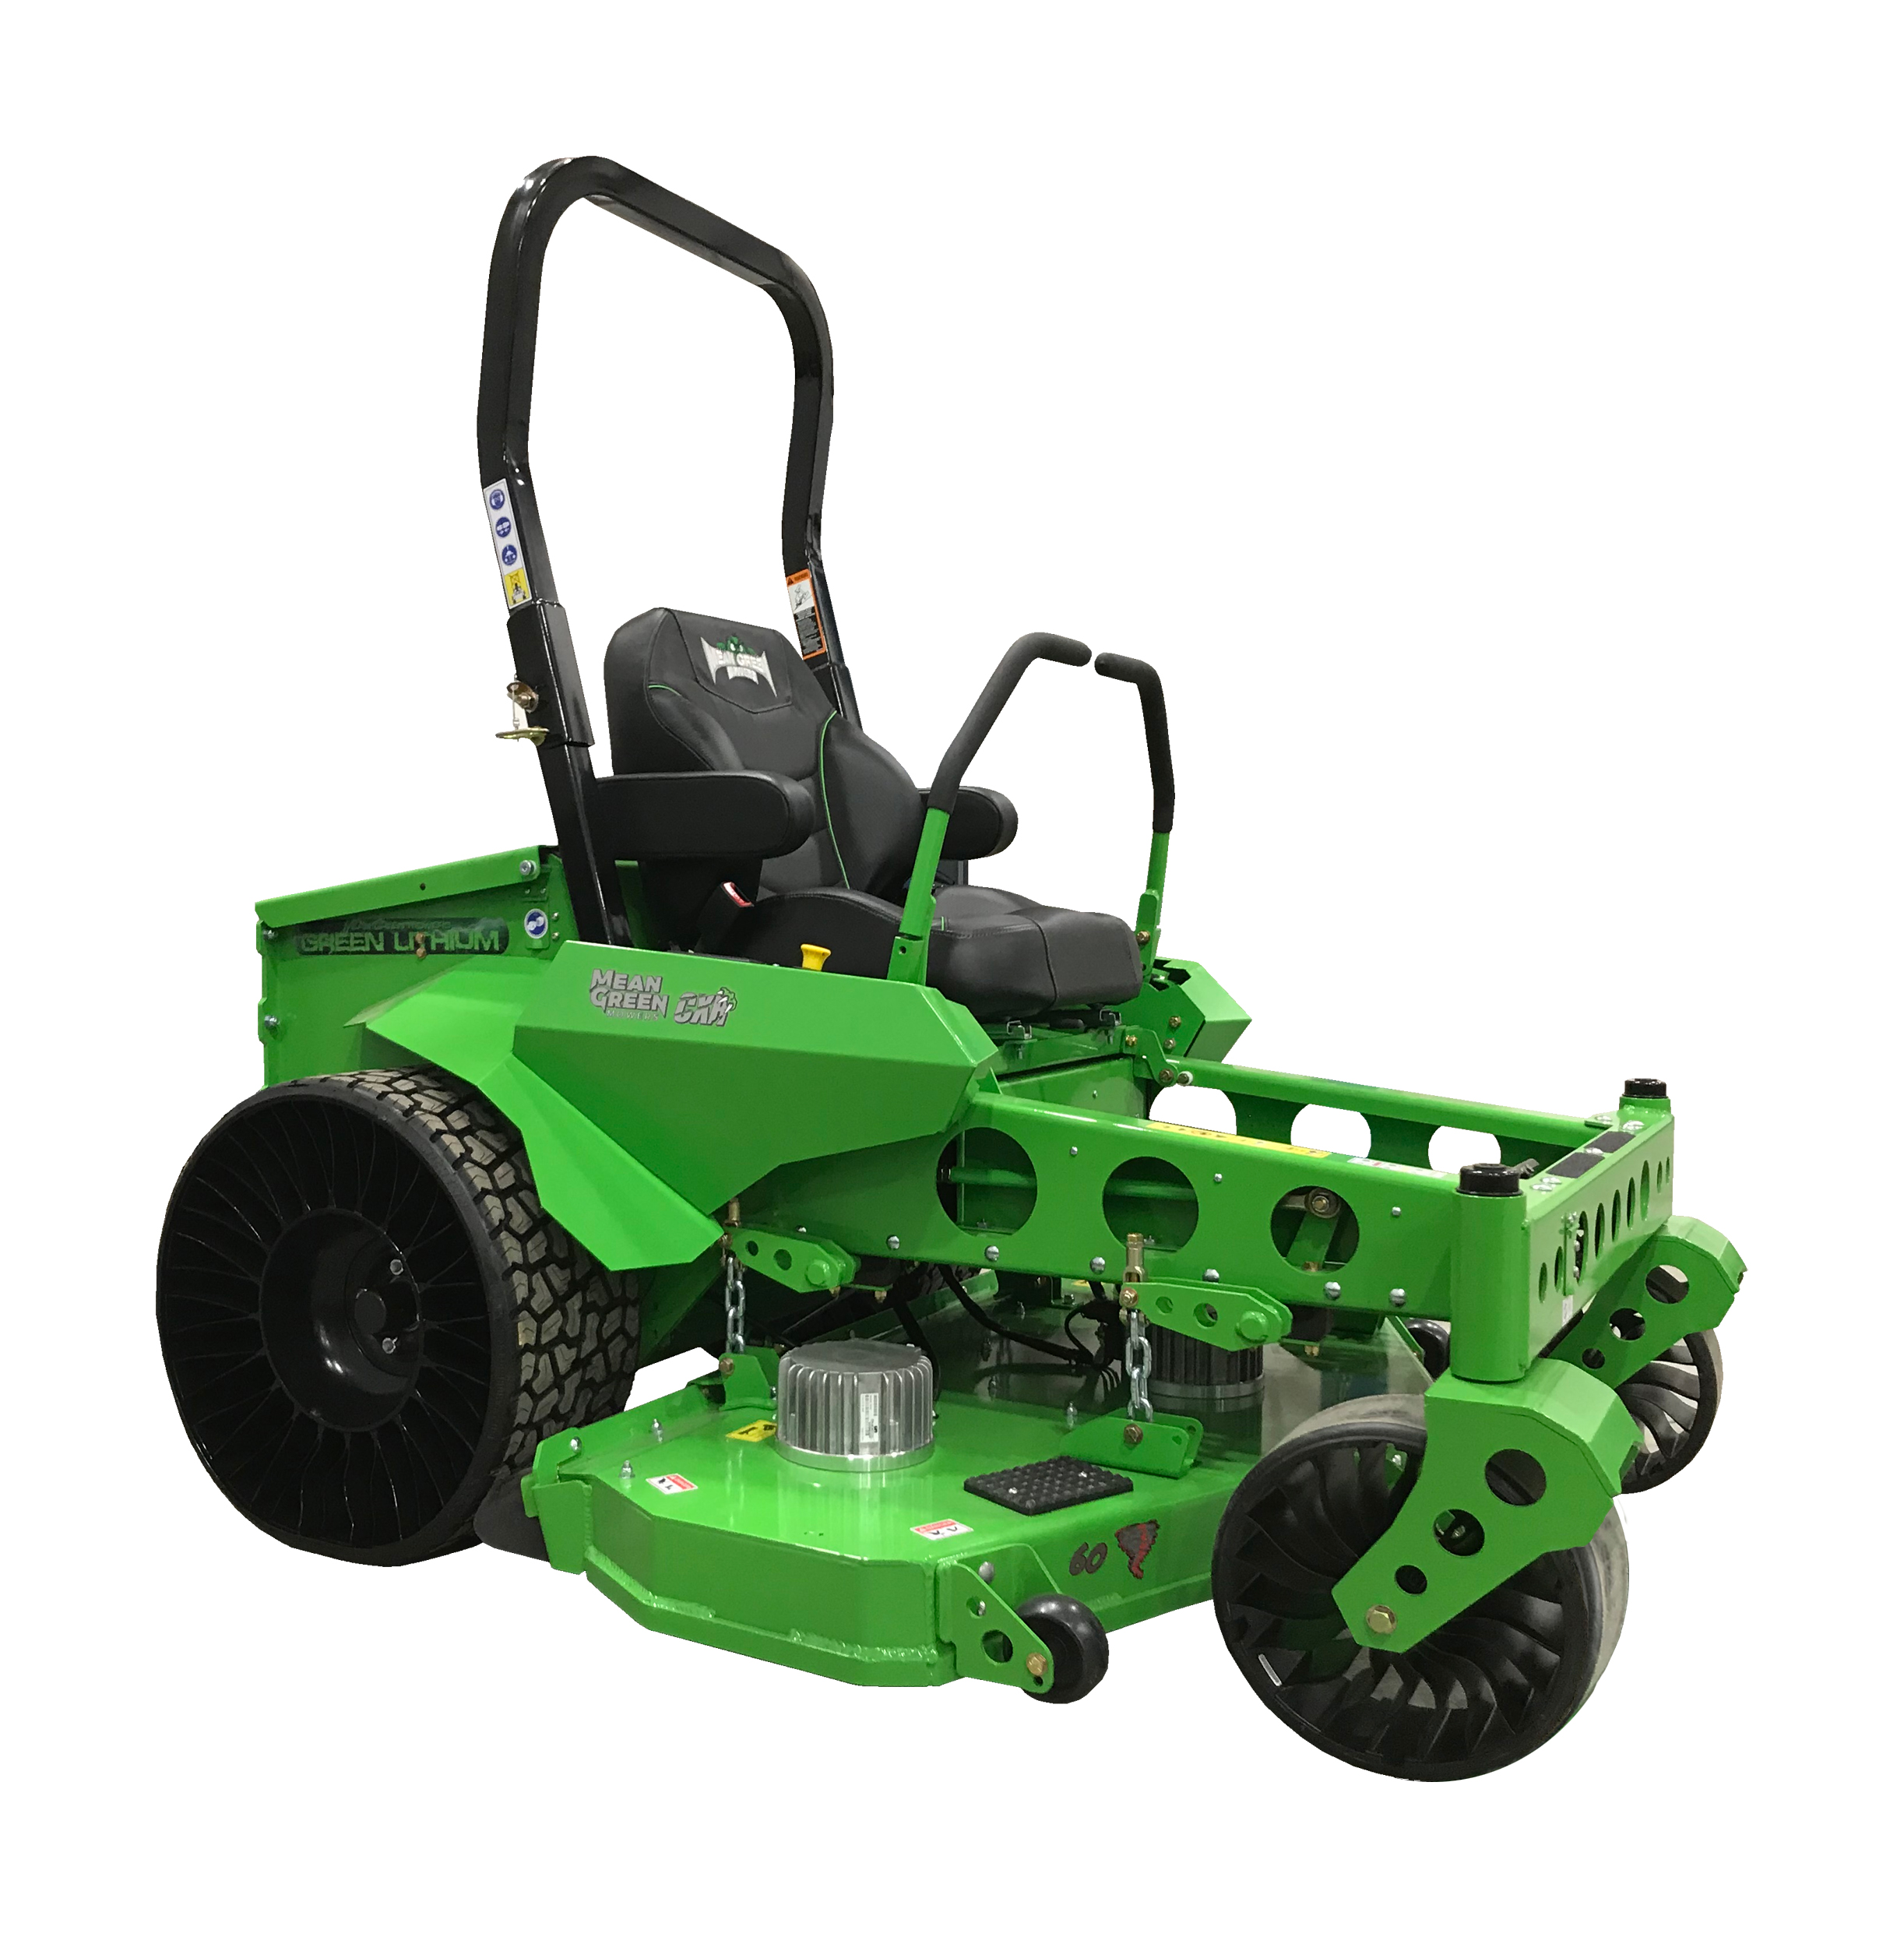 Electric Lawn Mower Sale Cxr 52 60 Mean Green Mowers